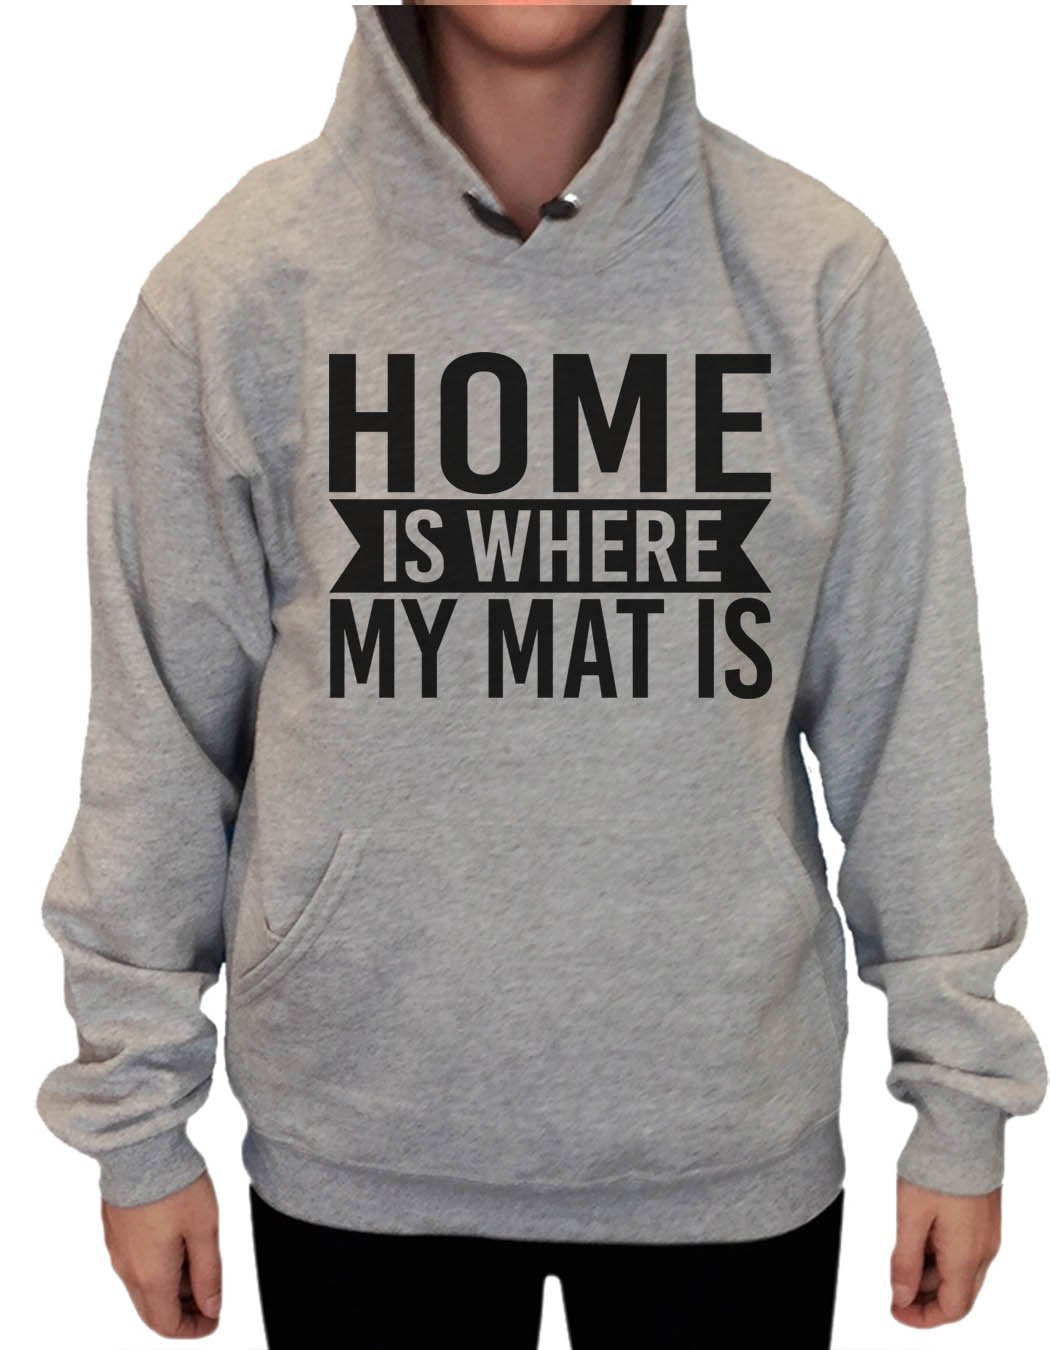 UNISEX HOODIE - Home Is Where My Mat Is - FUNNY MENS AND WOMENS HOODED SWEATSHIRTS - 2132 Funny Shirt